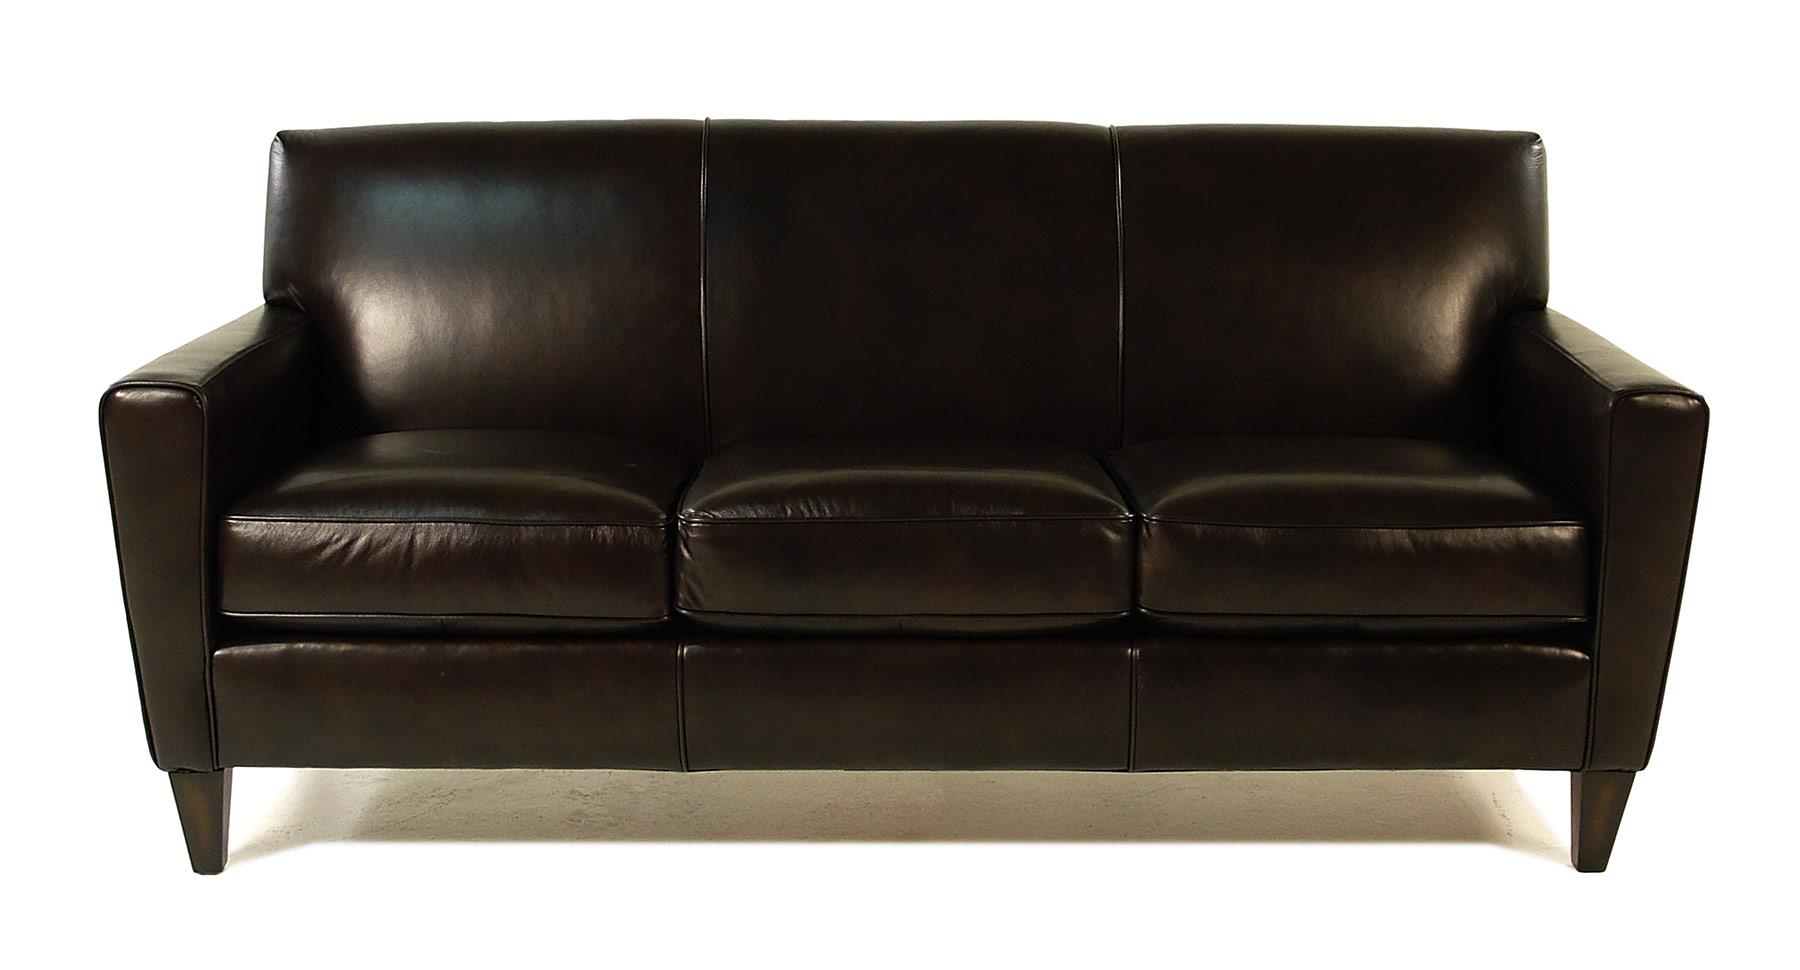 Flexsteel Chazz Leather Upholstered Sofa - Item Number: 3966-31